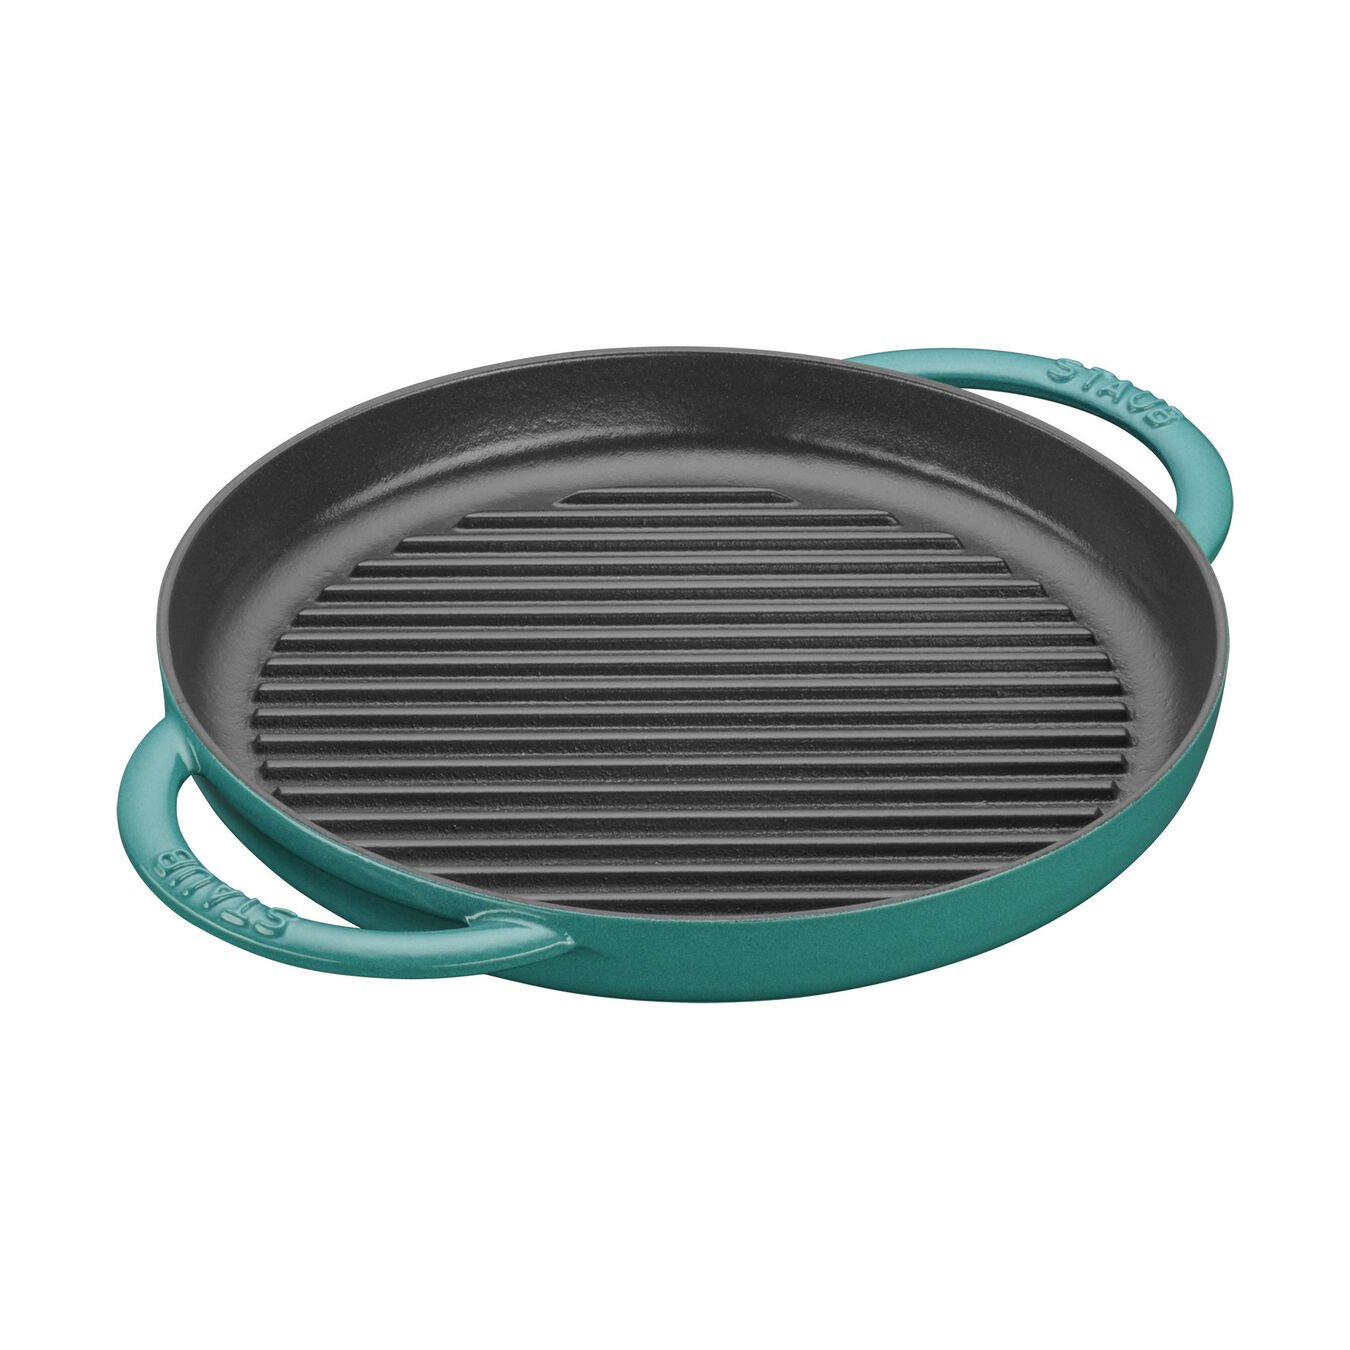 10-inch Pure Grill - Turquoise,,large 1